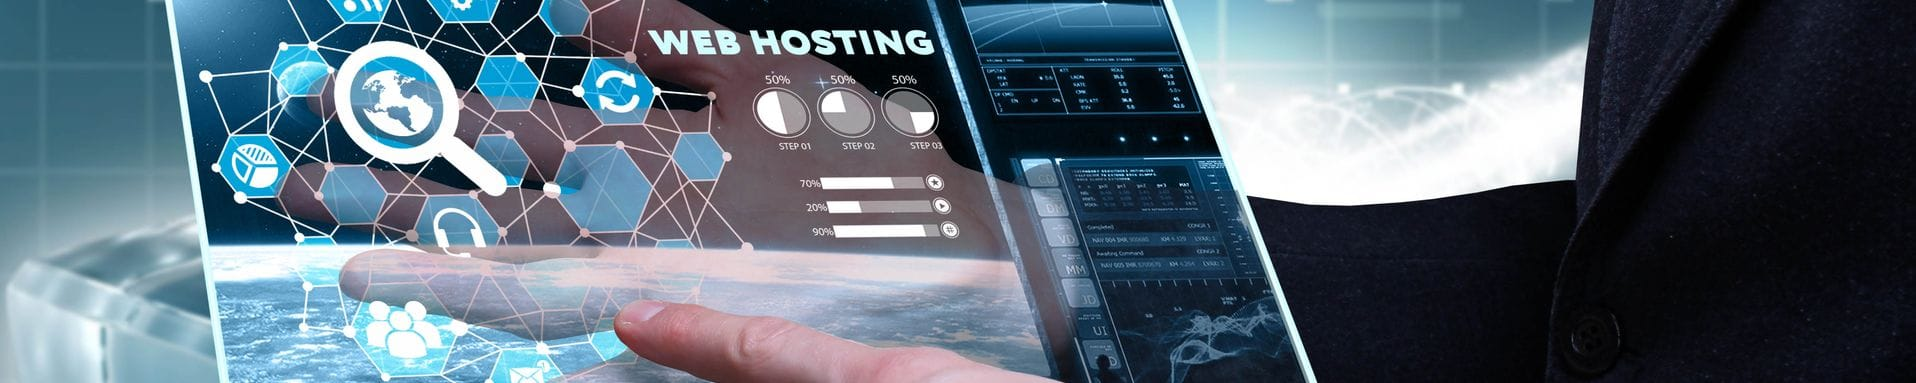 Web Hosting & Support